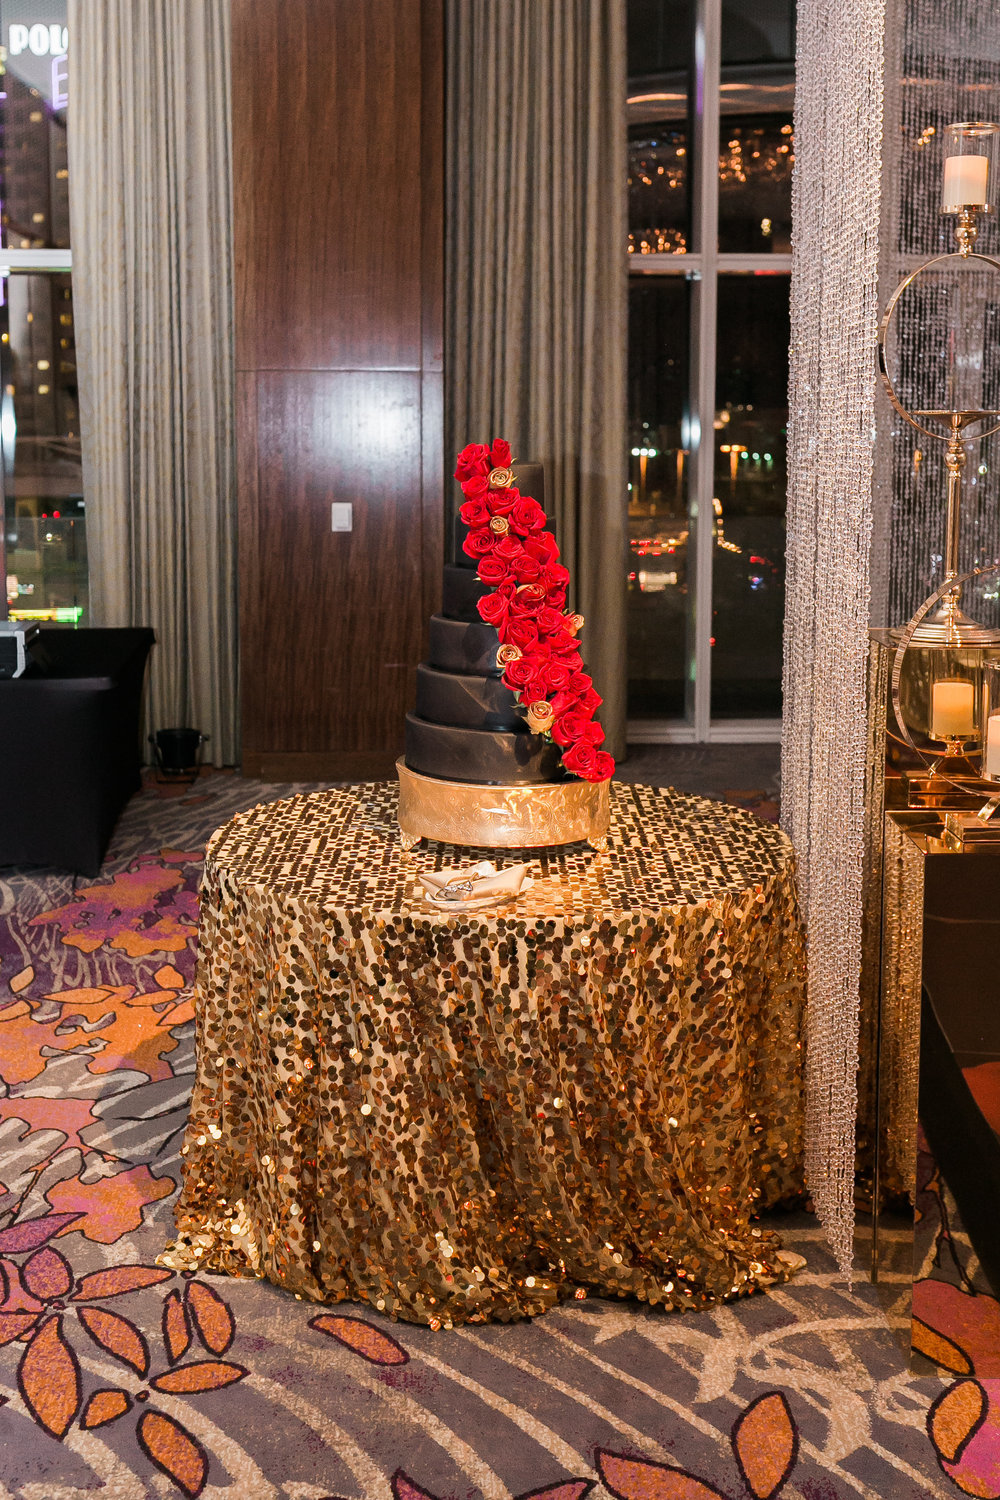 Black wedding cake with red roses.  Las Vegas Wedding Planner Andrea Eppolito shares this multicultural wedding.  Photo by J.Anne Photography. Wedding at Mandarin Oriental Las Vegas.  Decor by DBD Vegas.